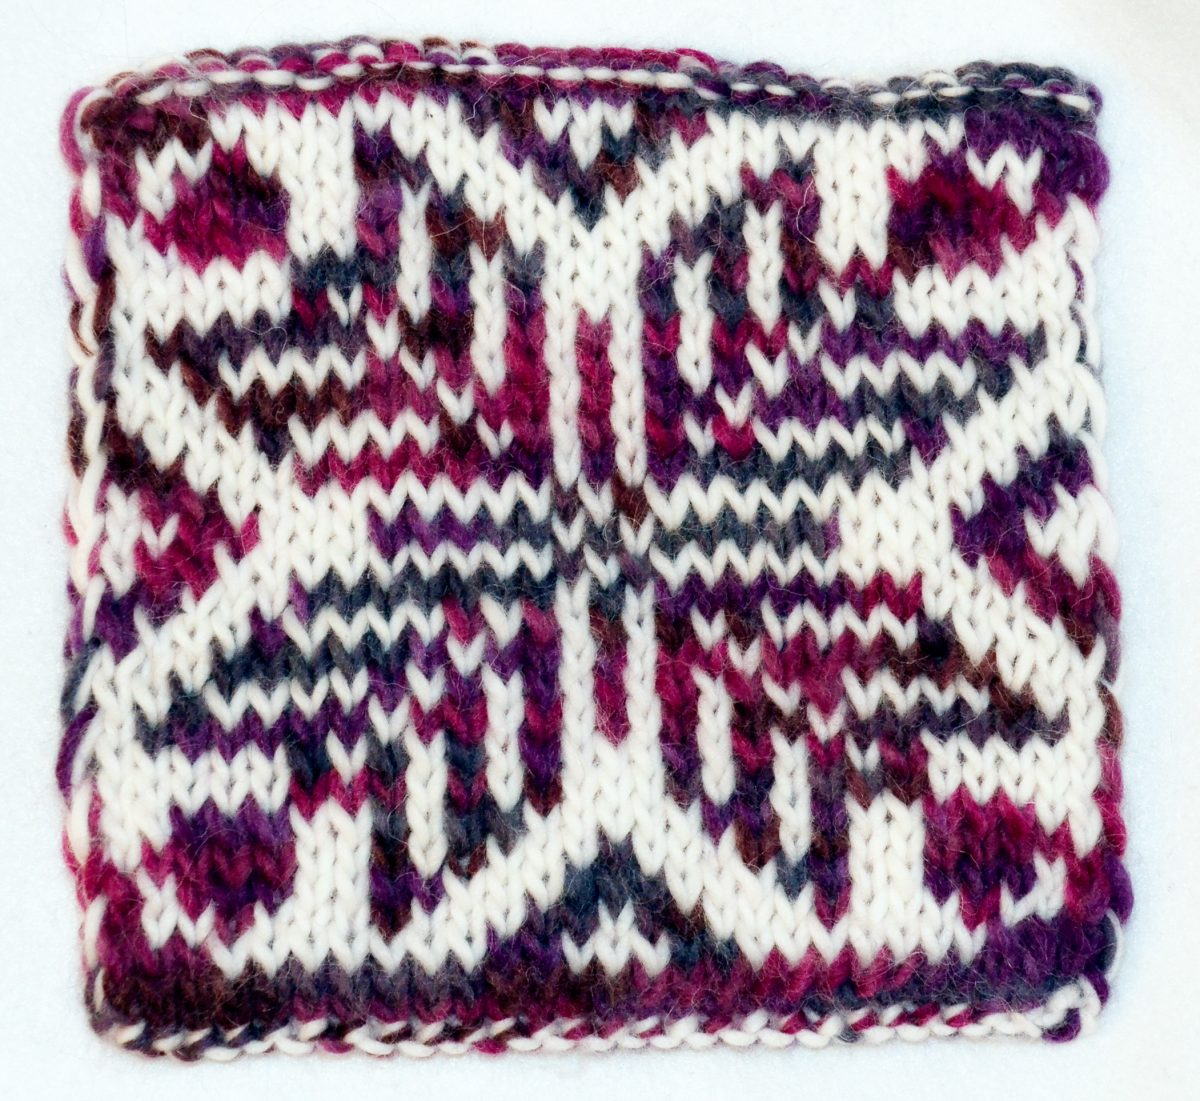 Double knit pattern - traditional motif other side